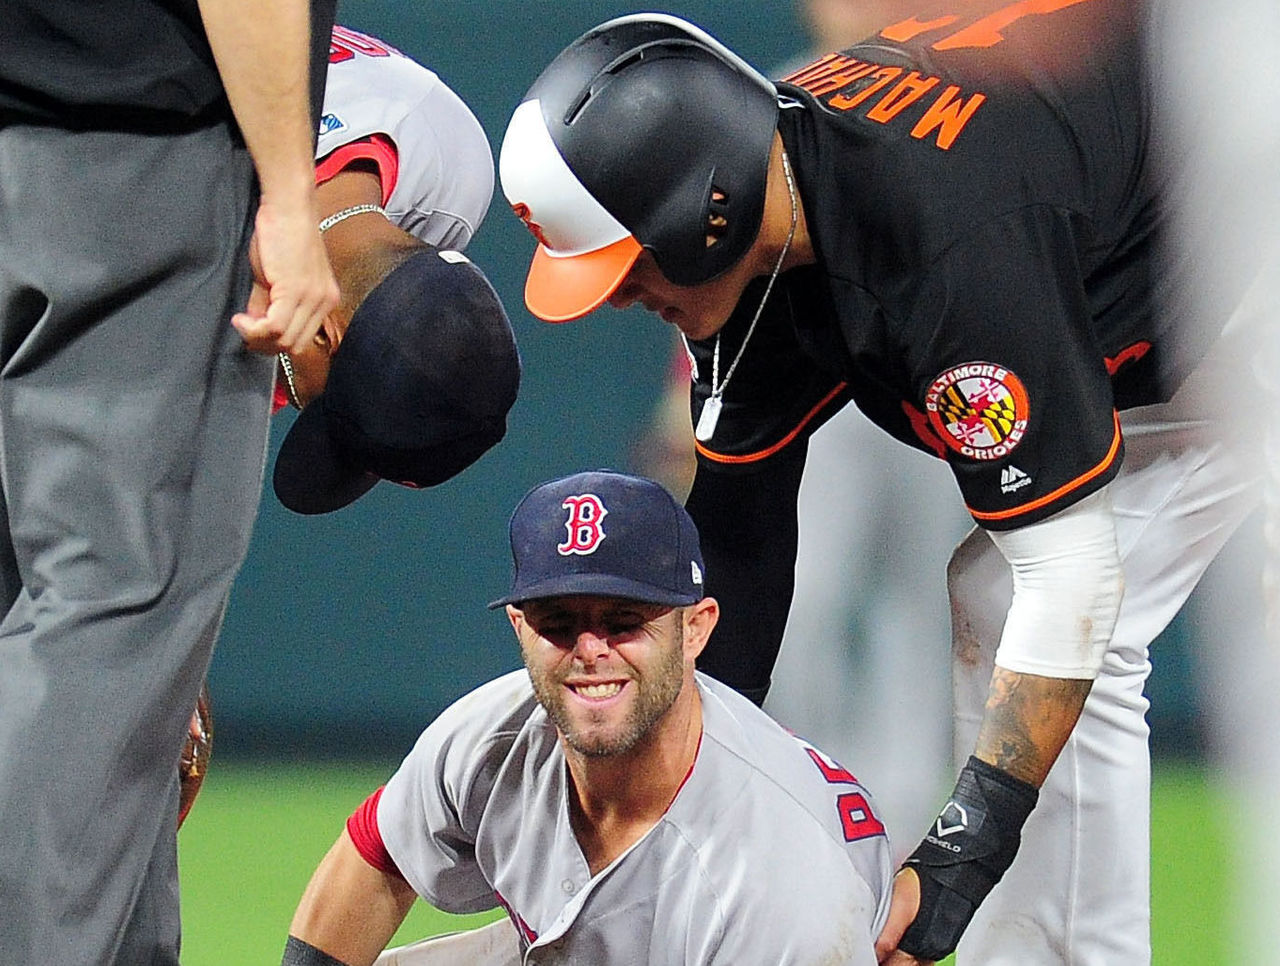 Cropped 2017 04 22t030618z 447493347 nocid rtrmadp 3 mlb boston red sox at baltimore orioles